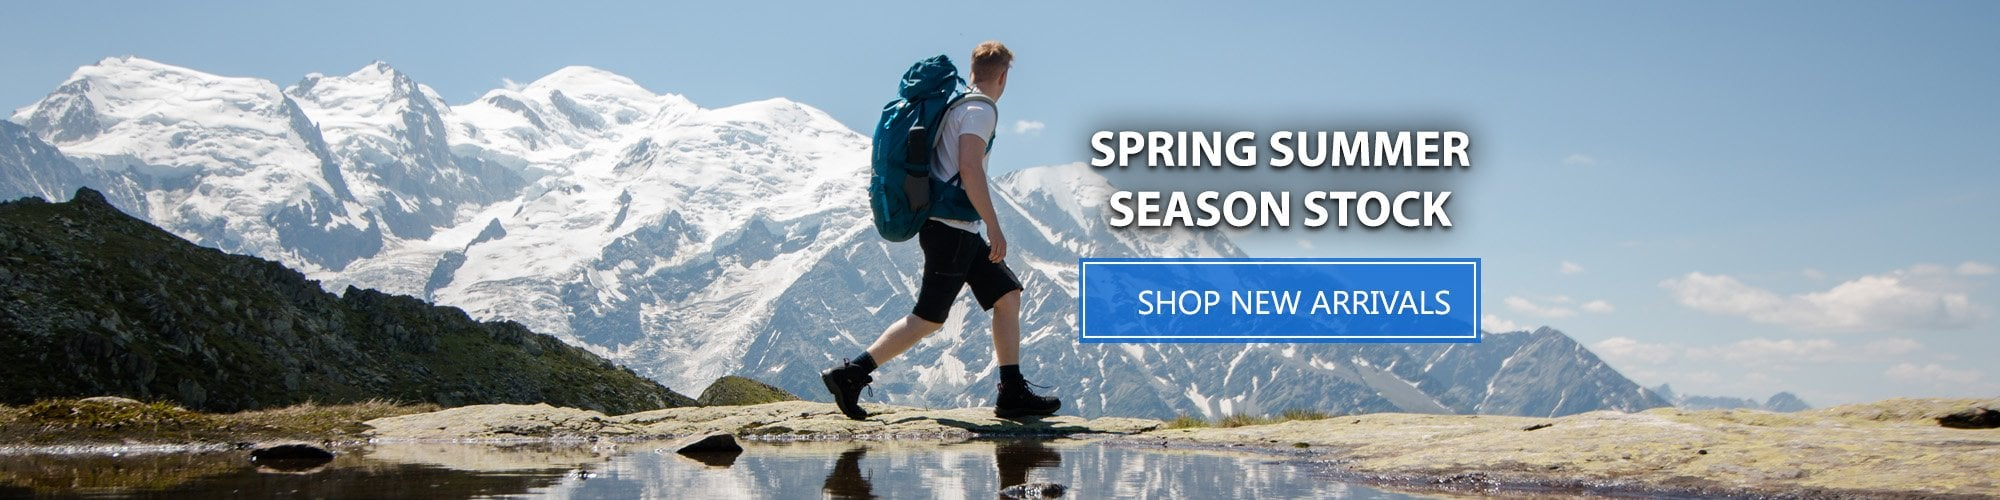 SS New Season Stock